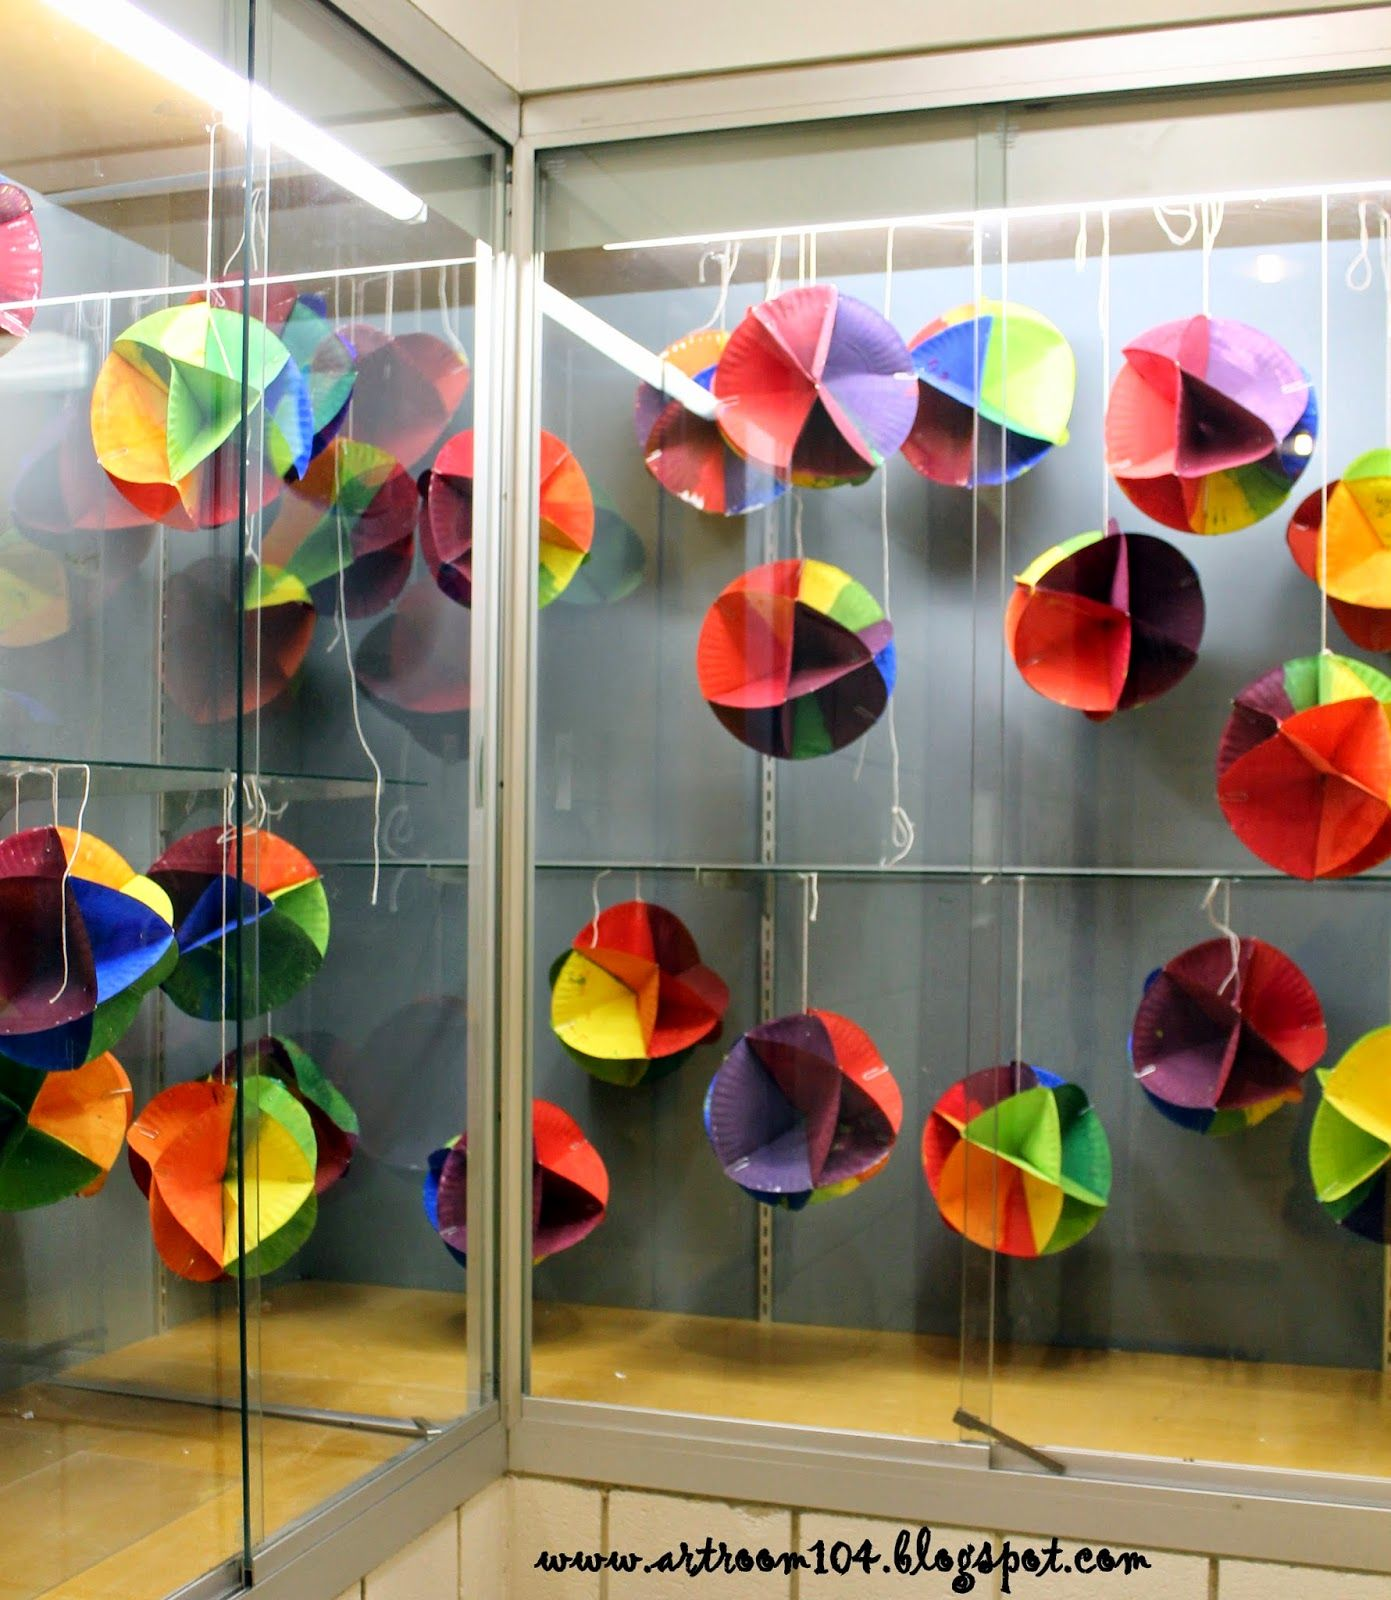 Color wheel art lesson for second grade - A While Back I Shared A Tutorial On How To Make A Color Wheel Out Of Paper Plates Which I Found Out From A Reader Comment Came From